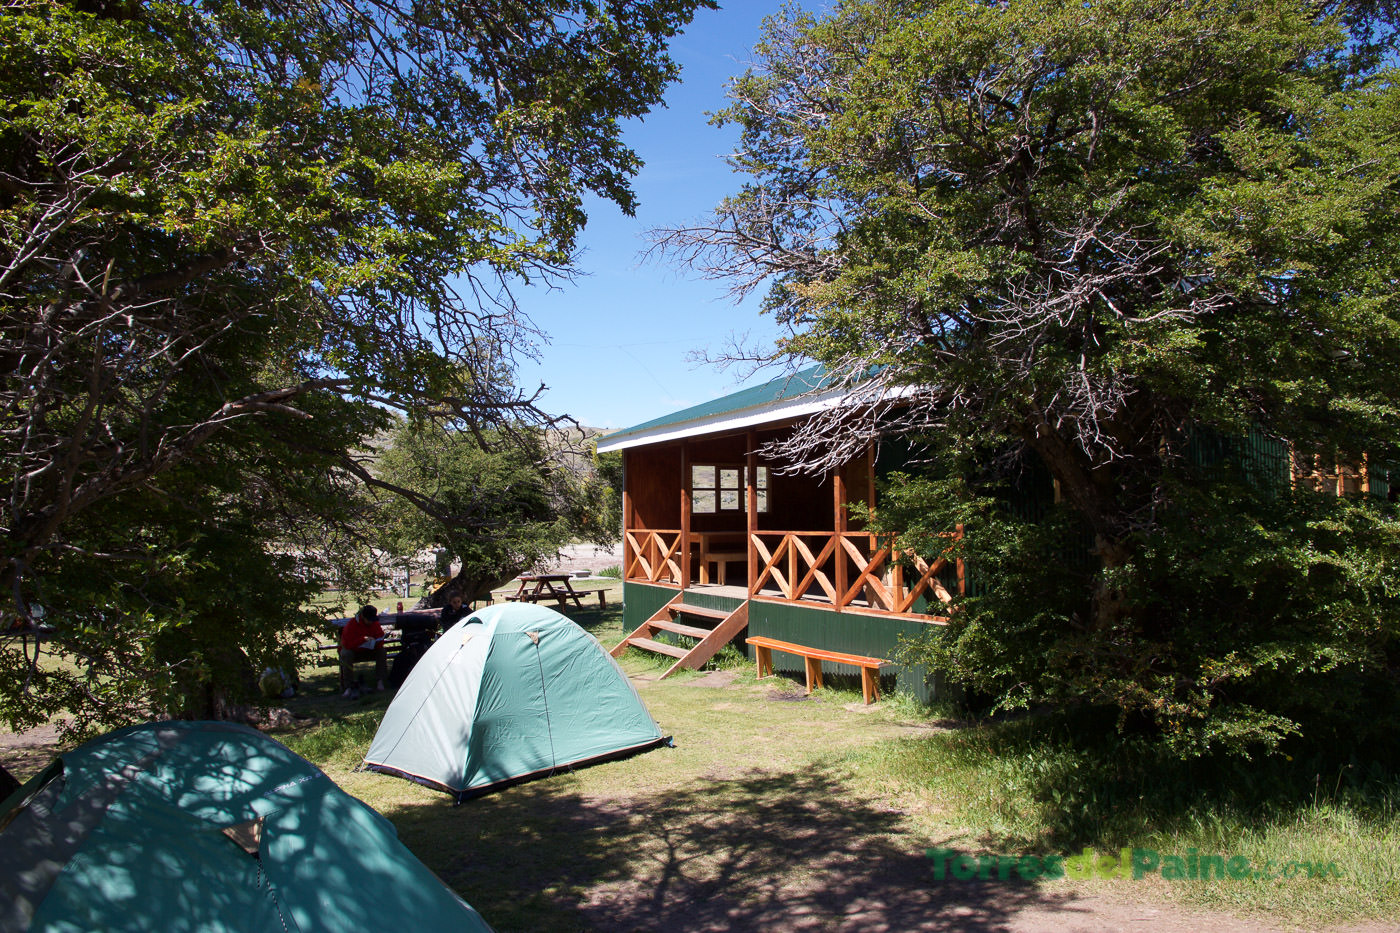 Circuito W Torres Del Paine Camping : Camping seron torres del paine torresdelpaine